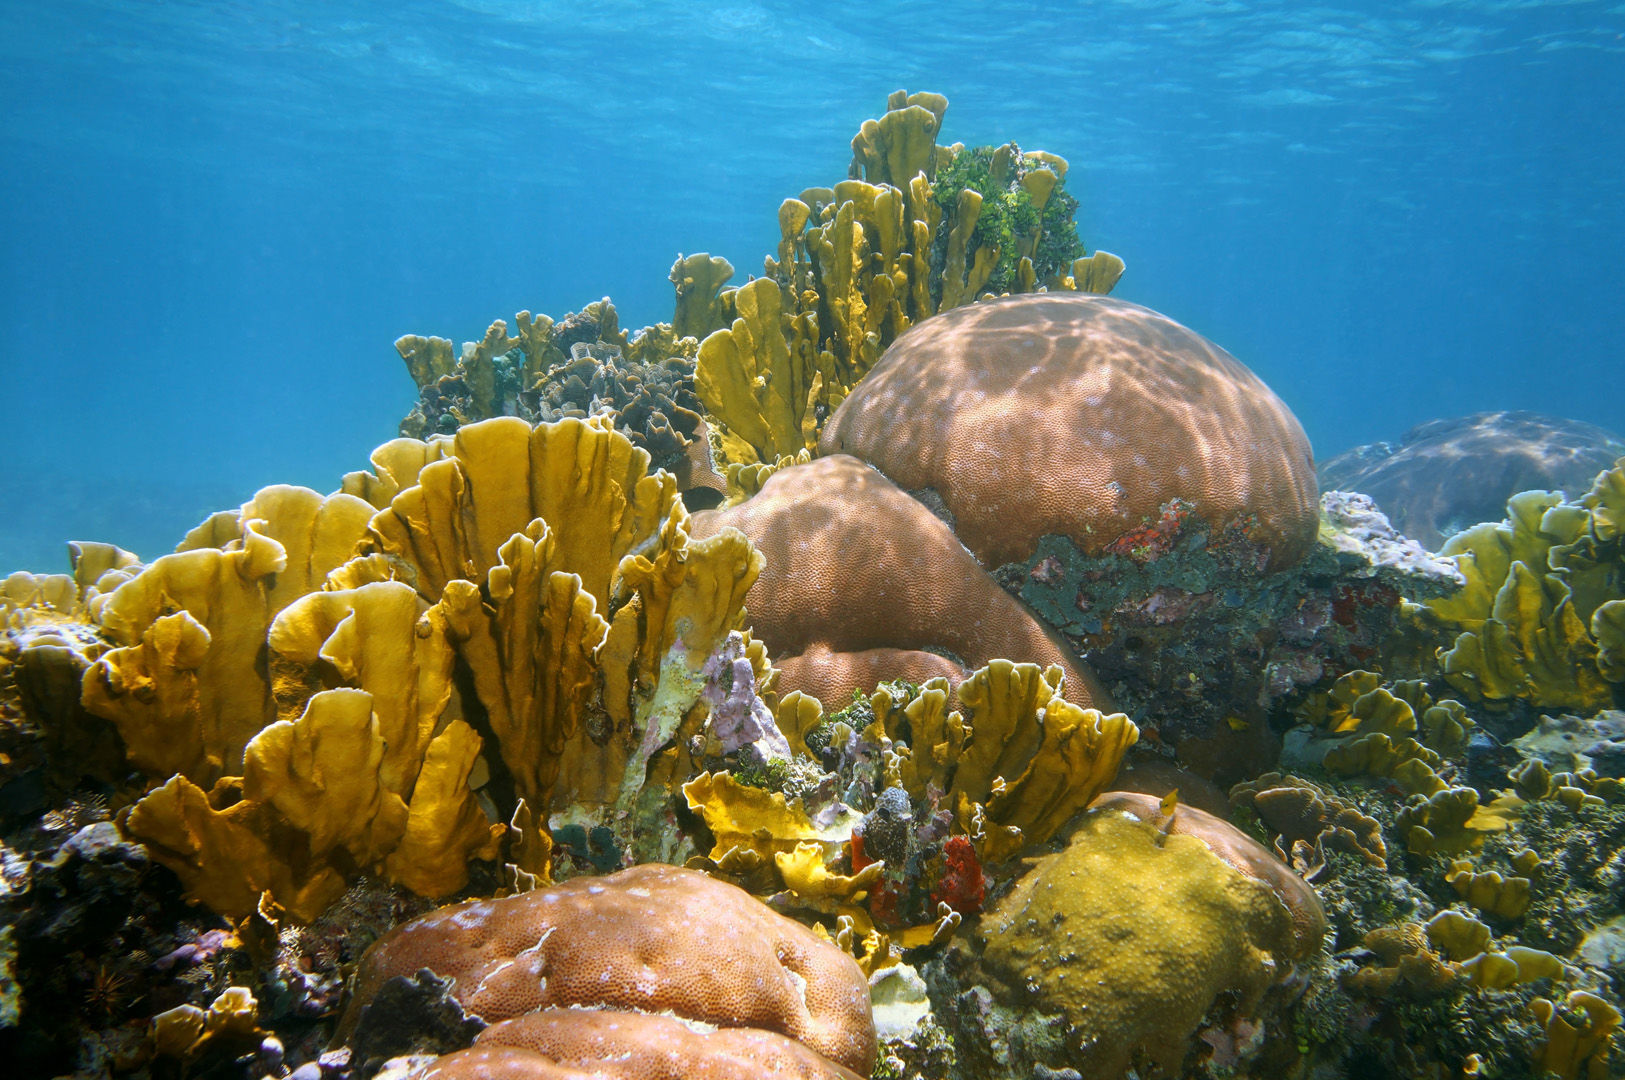 Coral reefs like these are what makes the diving in Puerto Rico interesting